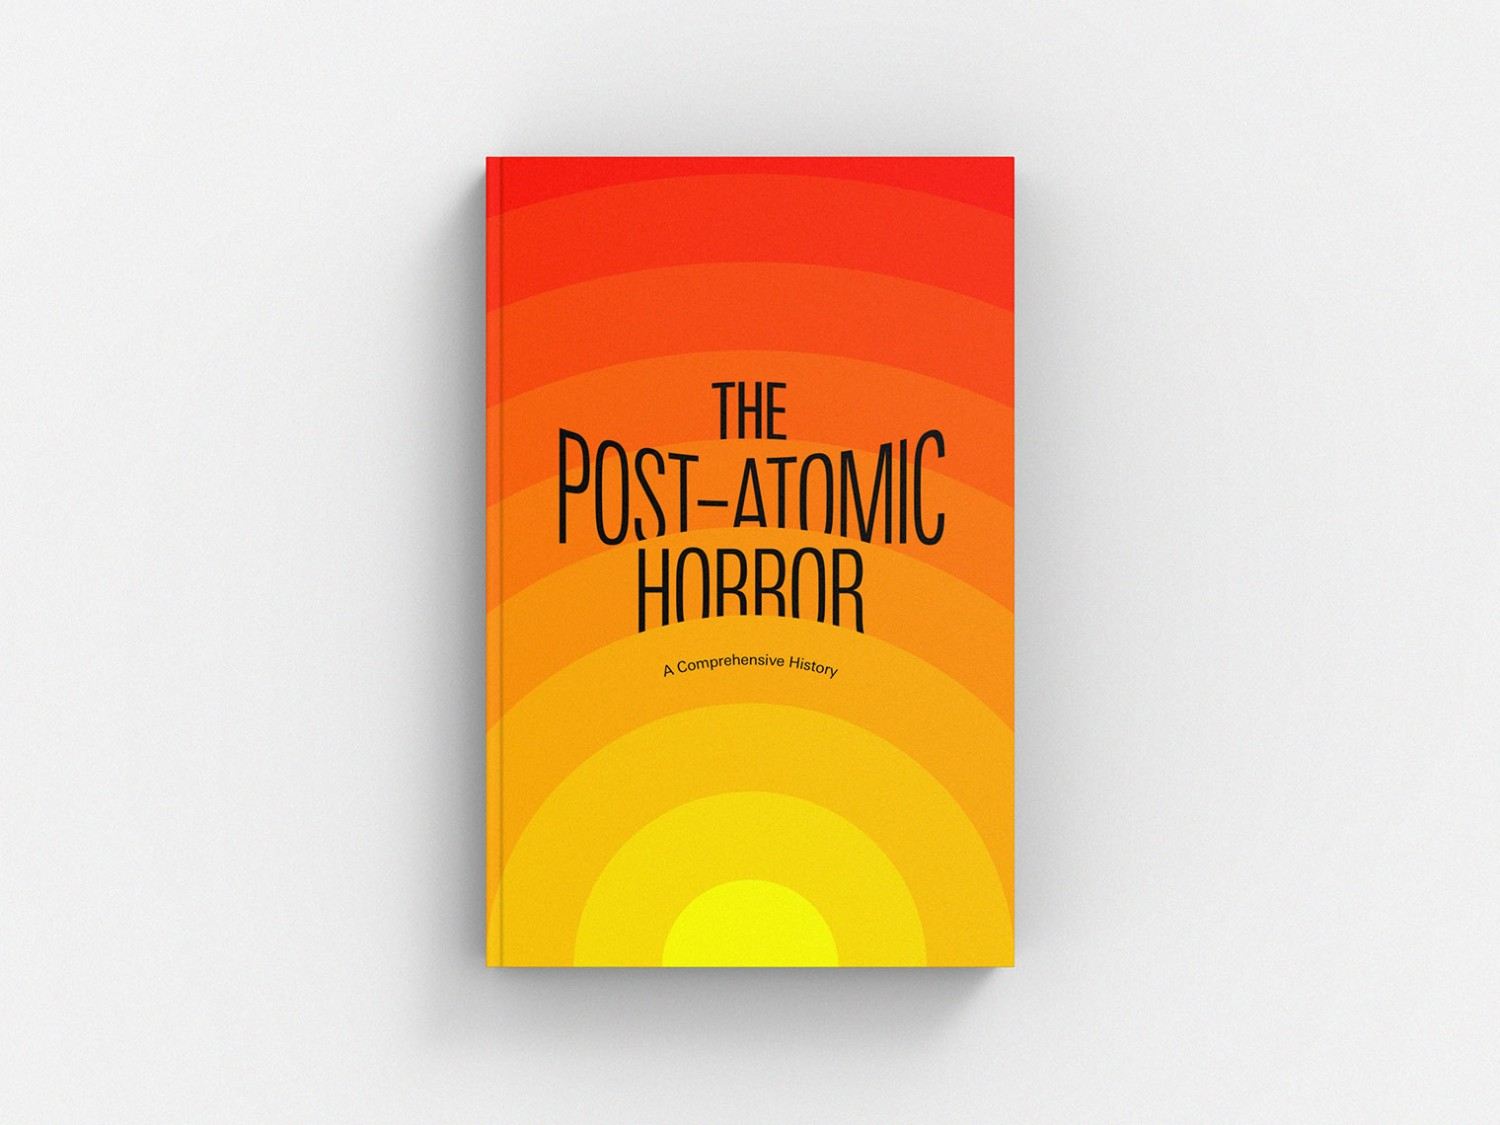 The Post-Atomic Horror